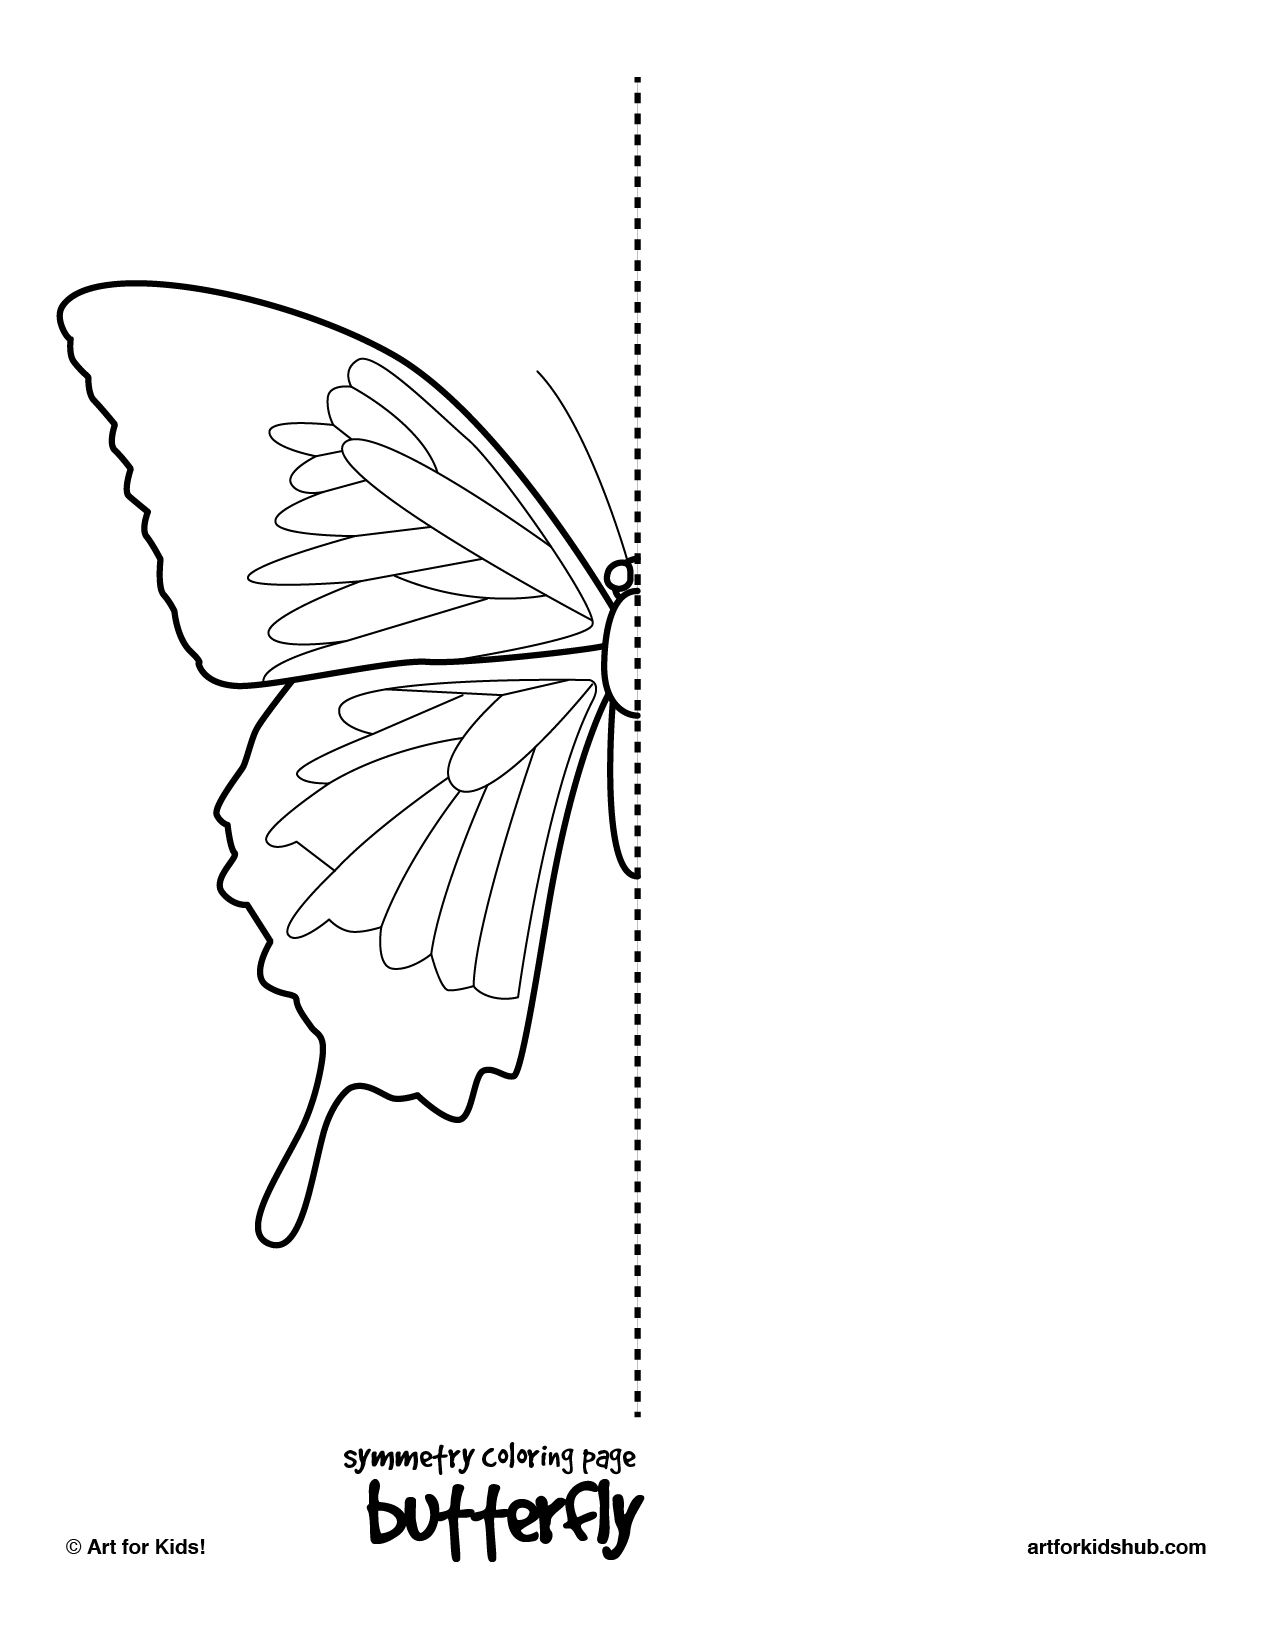 10 free coloring pages bug symmetry art for kids hub